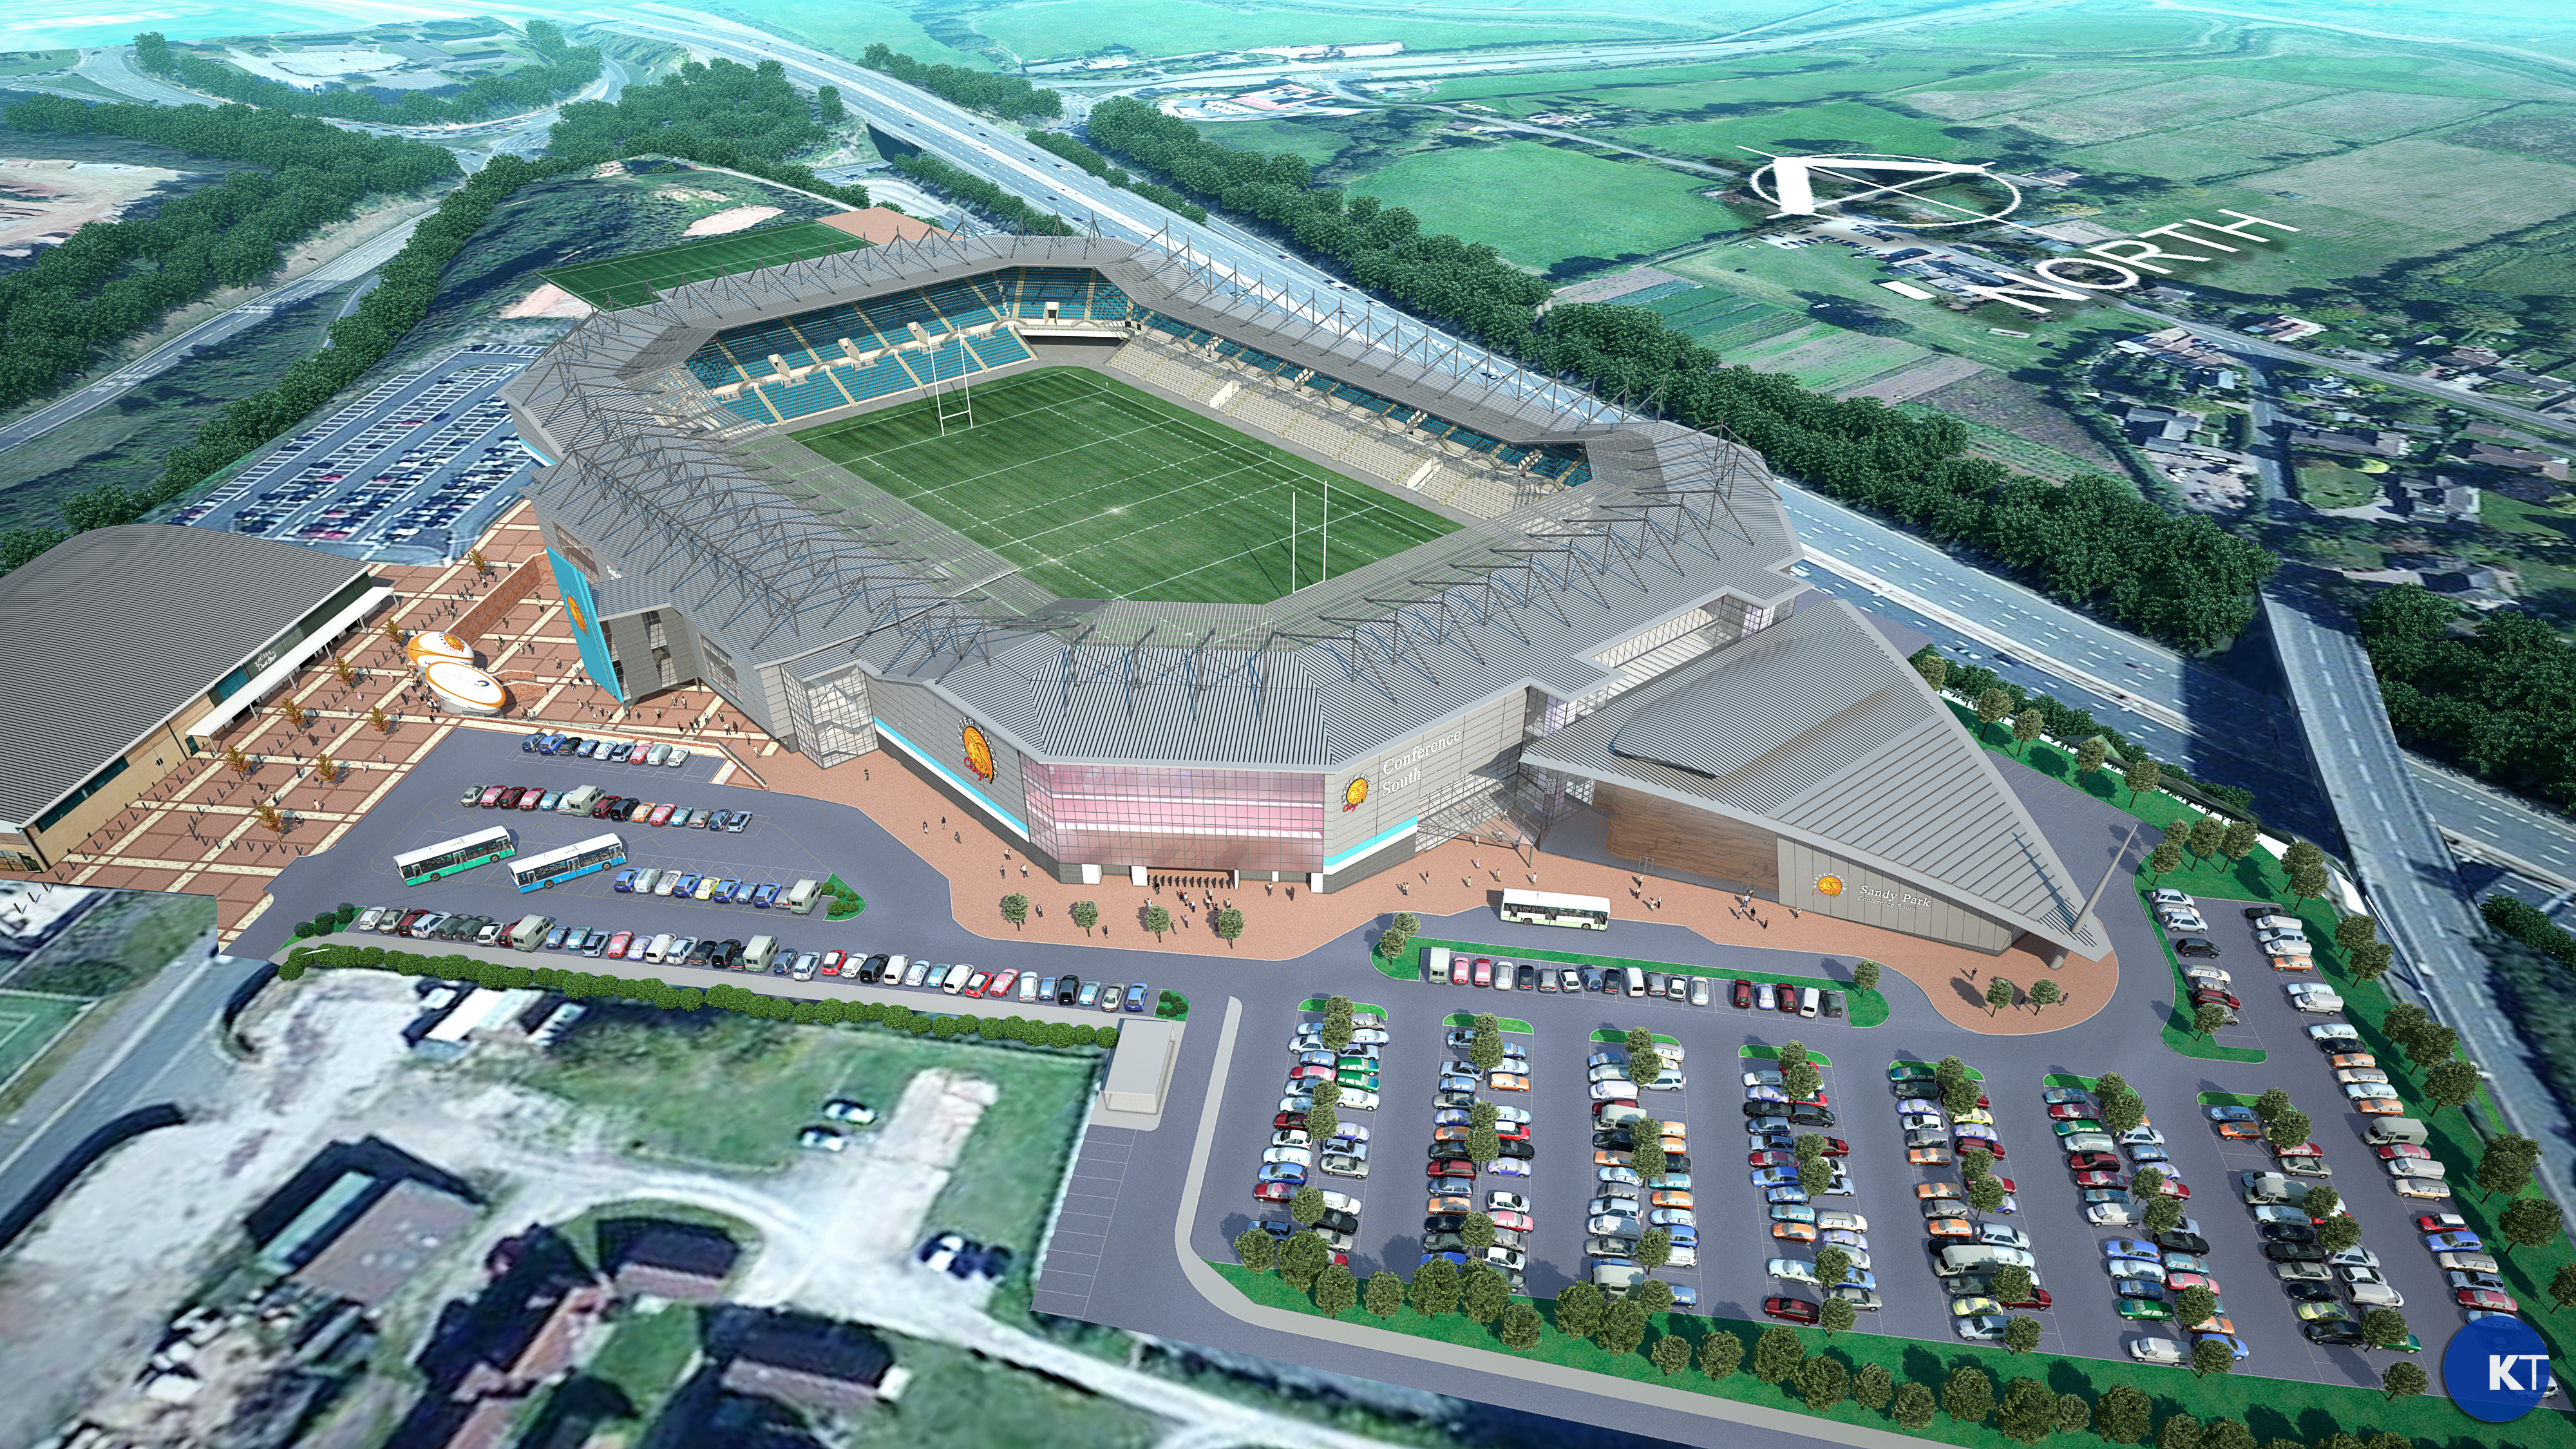 Sandy Park Development Plans Approved By Ecc The Exeter